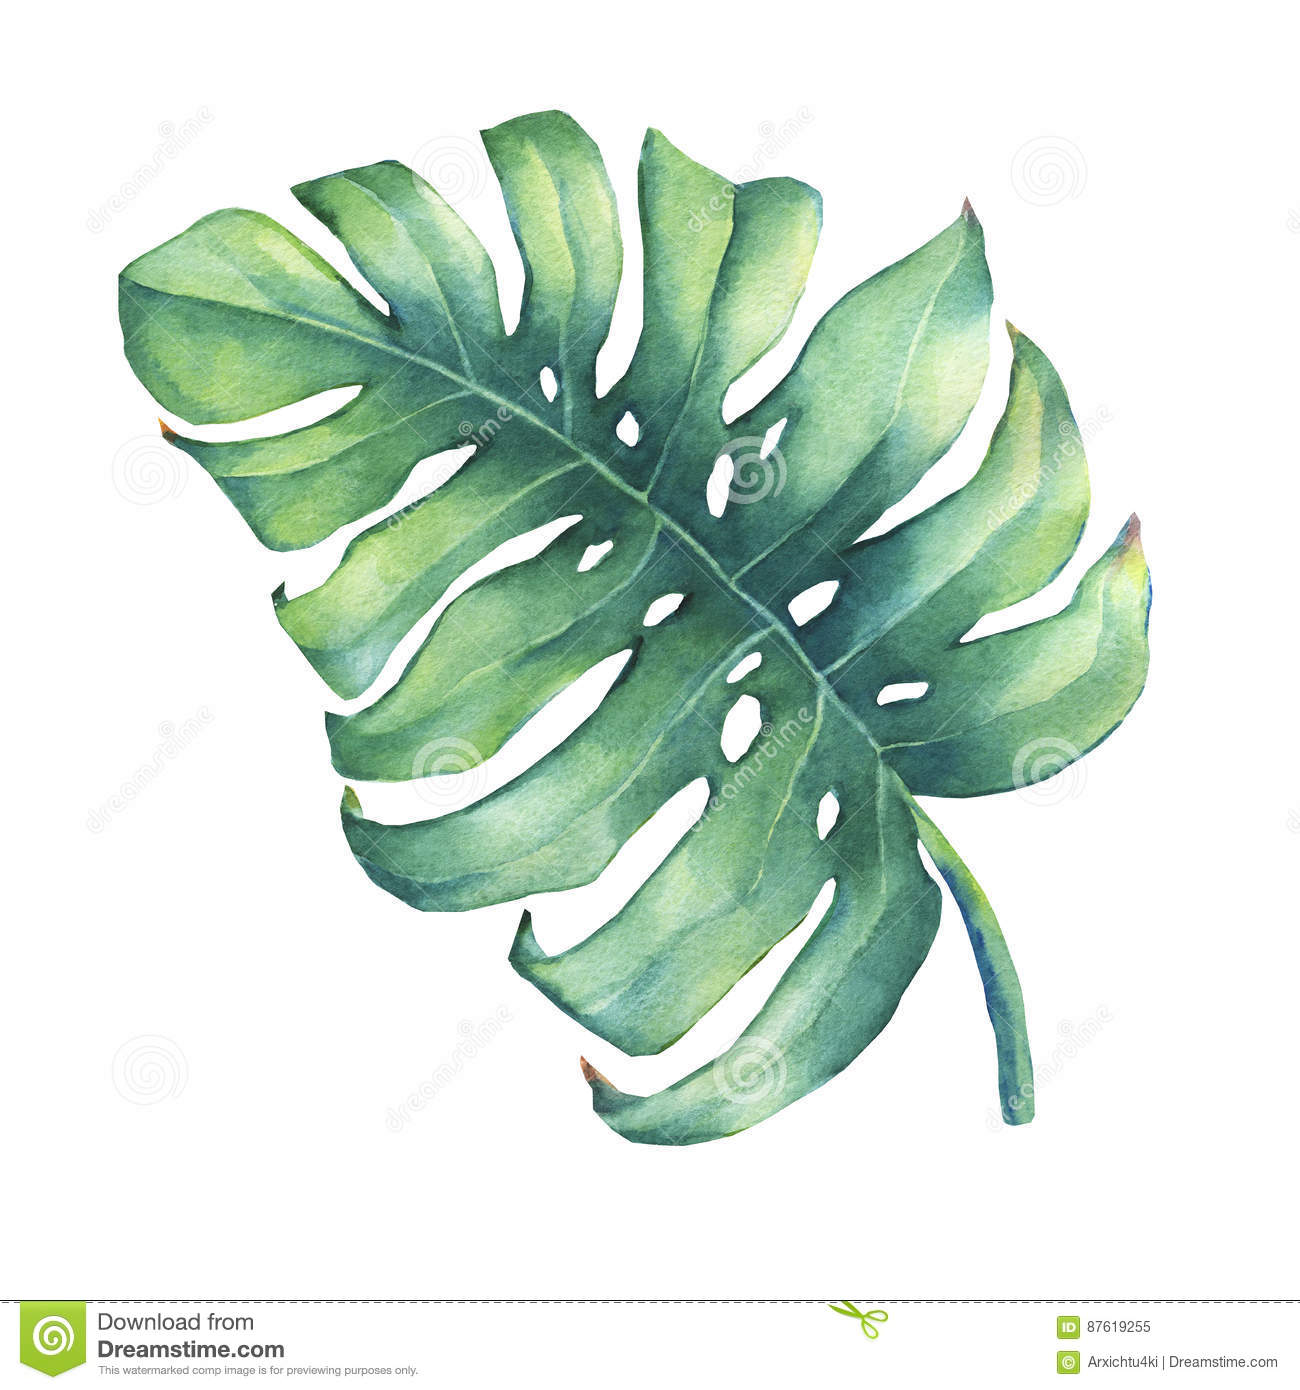 Big tropical green leaf of Monstera plant.